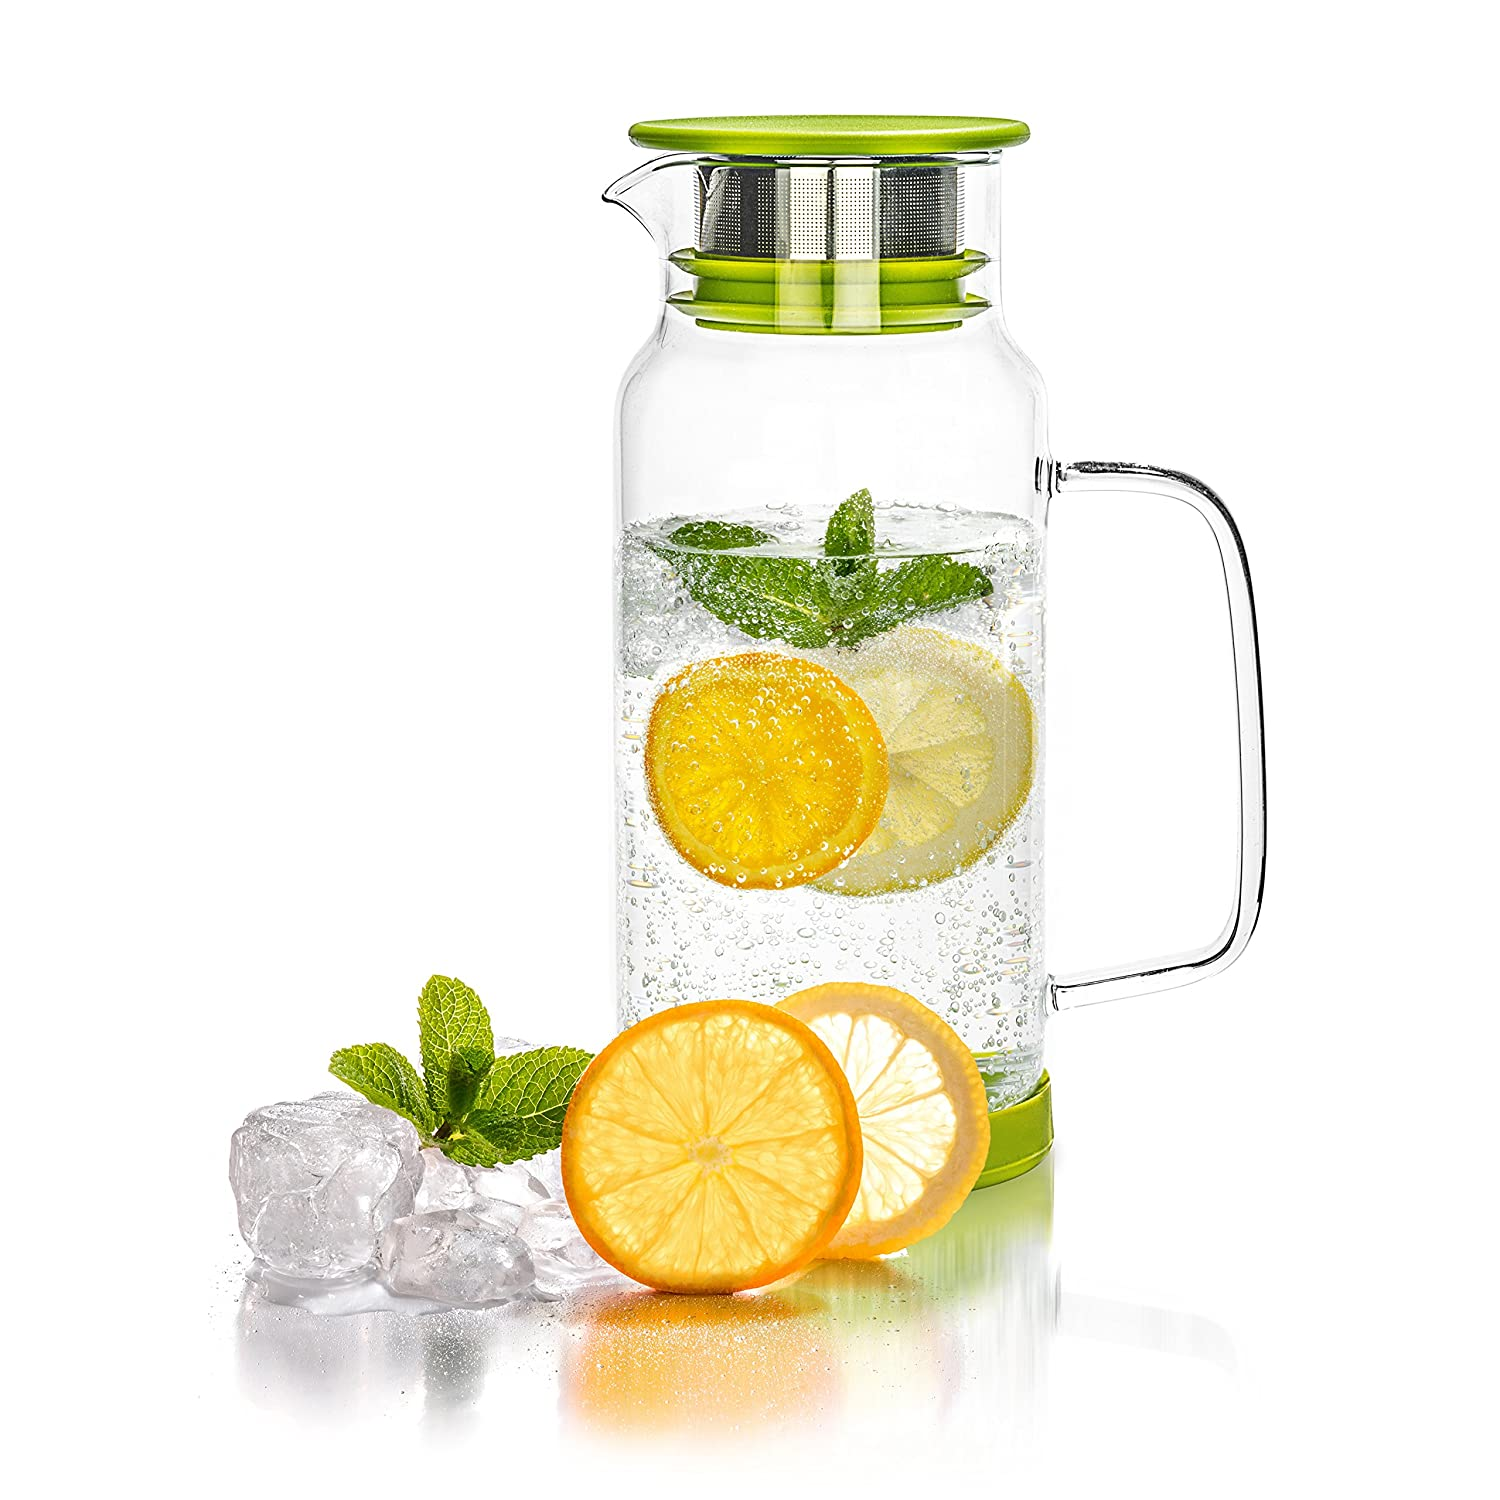 Tealyra - Large Glass Jug - 800ml - Borosilicate Glass Water Carafe Pitcher with Infuser - Tea Maker Brewing Filter - Hot and Iced Beverage - Juice - Tea - Coffee - 27-ounce COMINHKPR111297